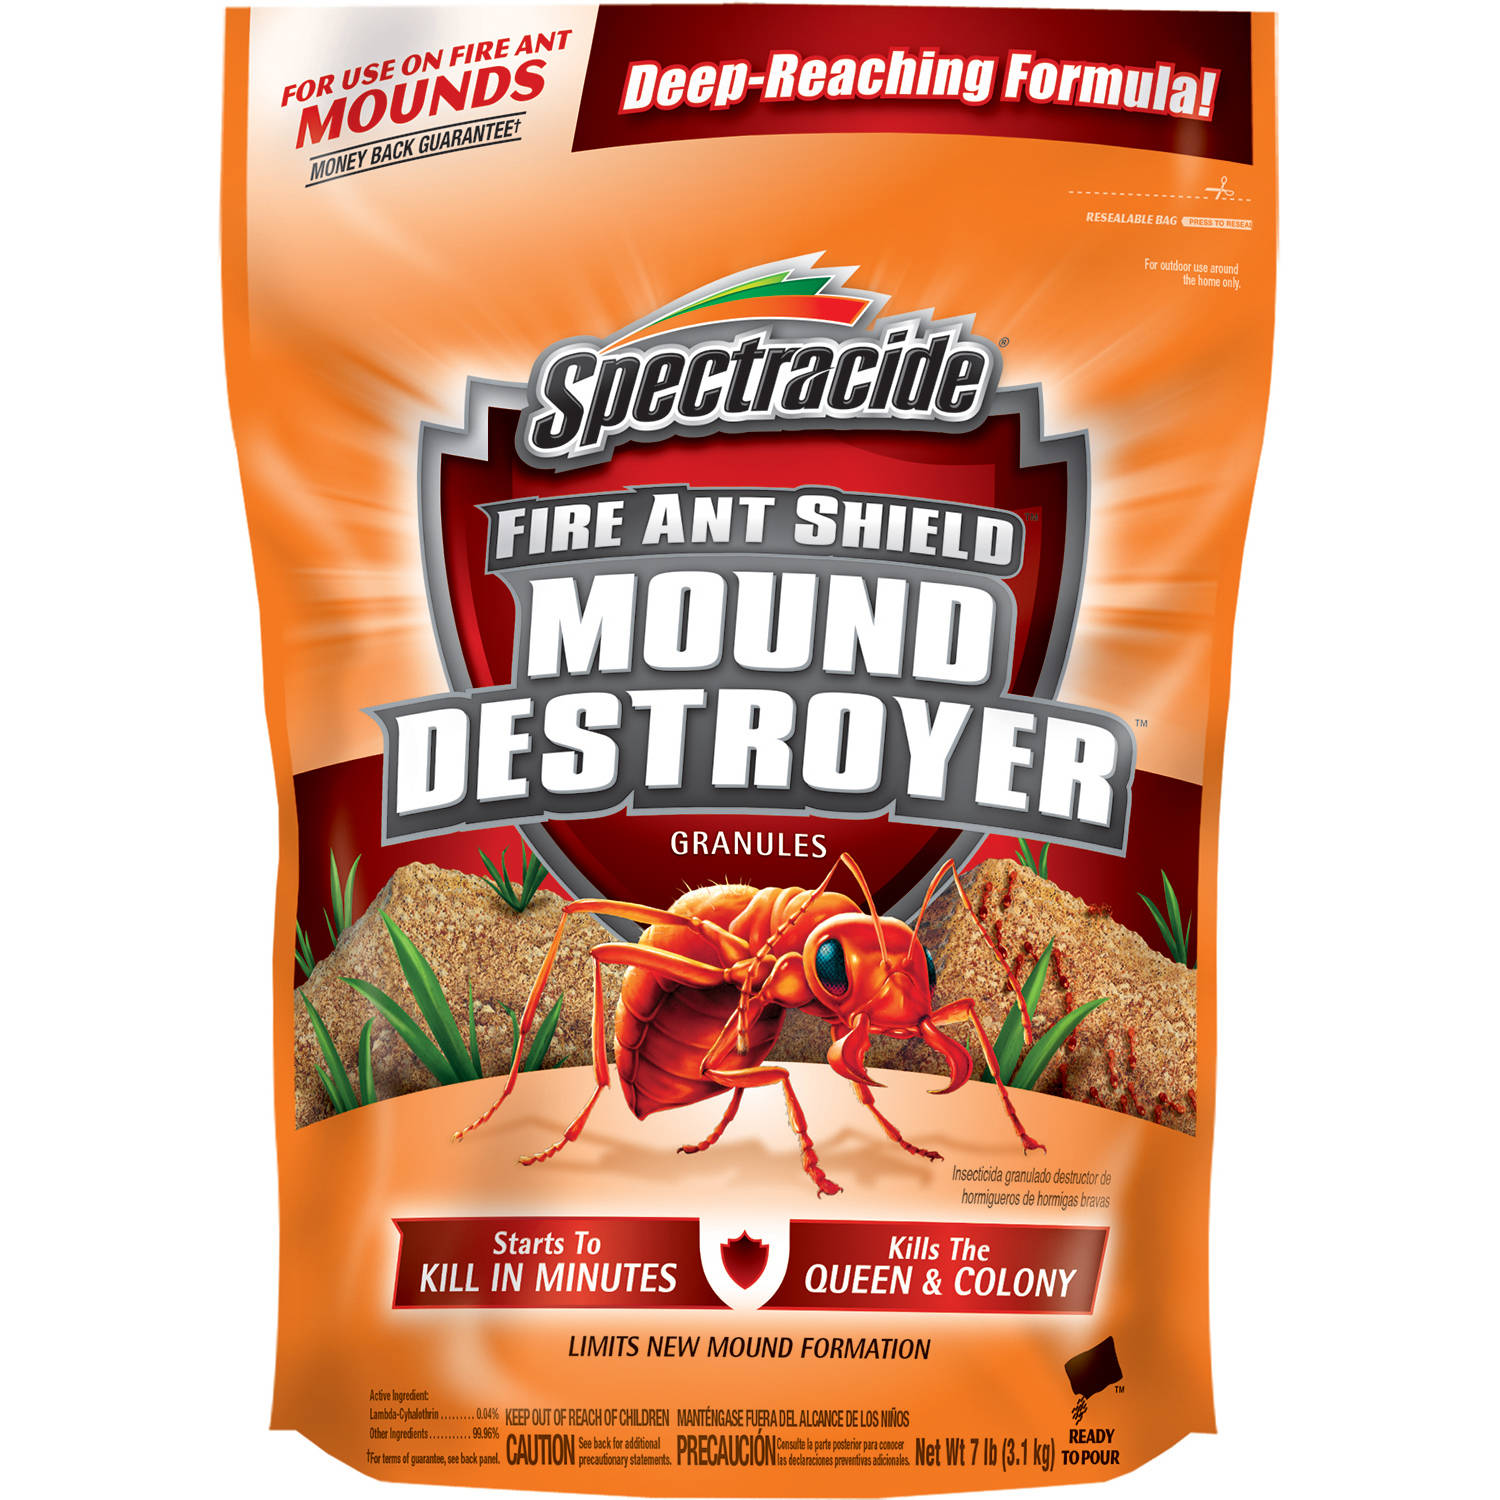 Spectracide Fire Ant Shield Mound Destroyer Granules, 7 lb